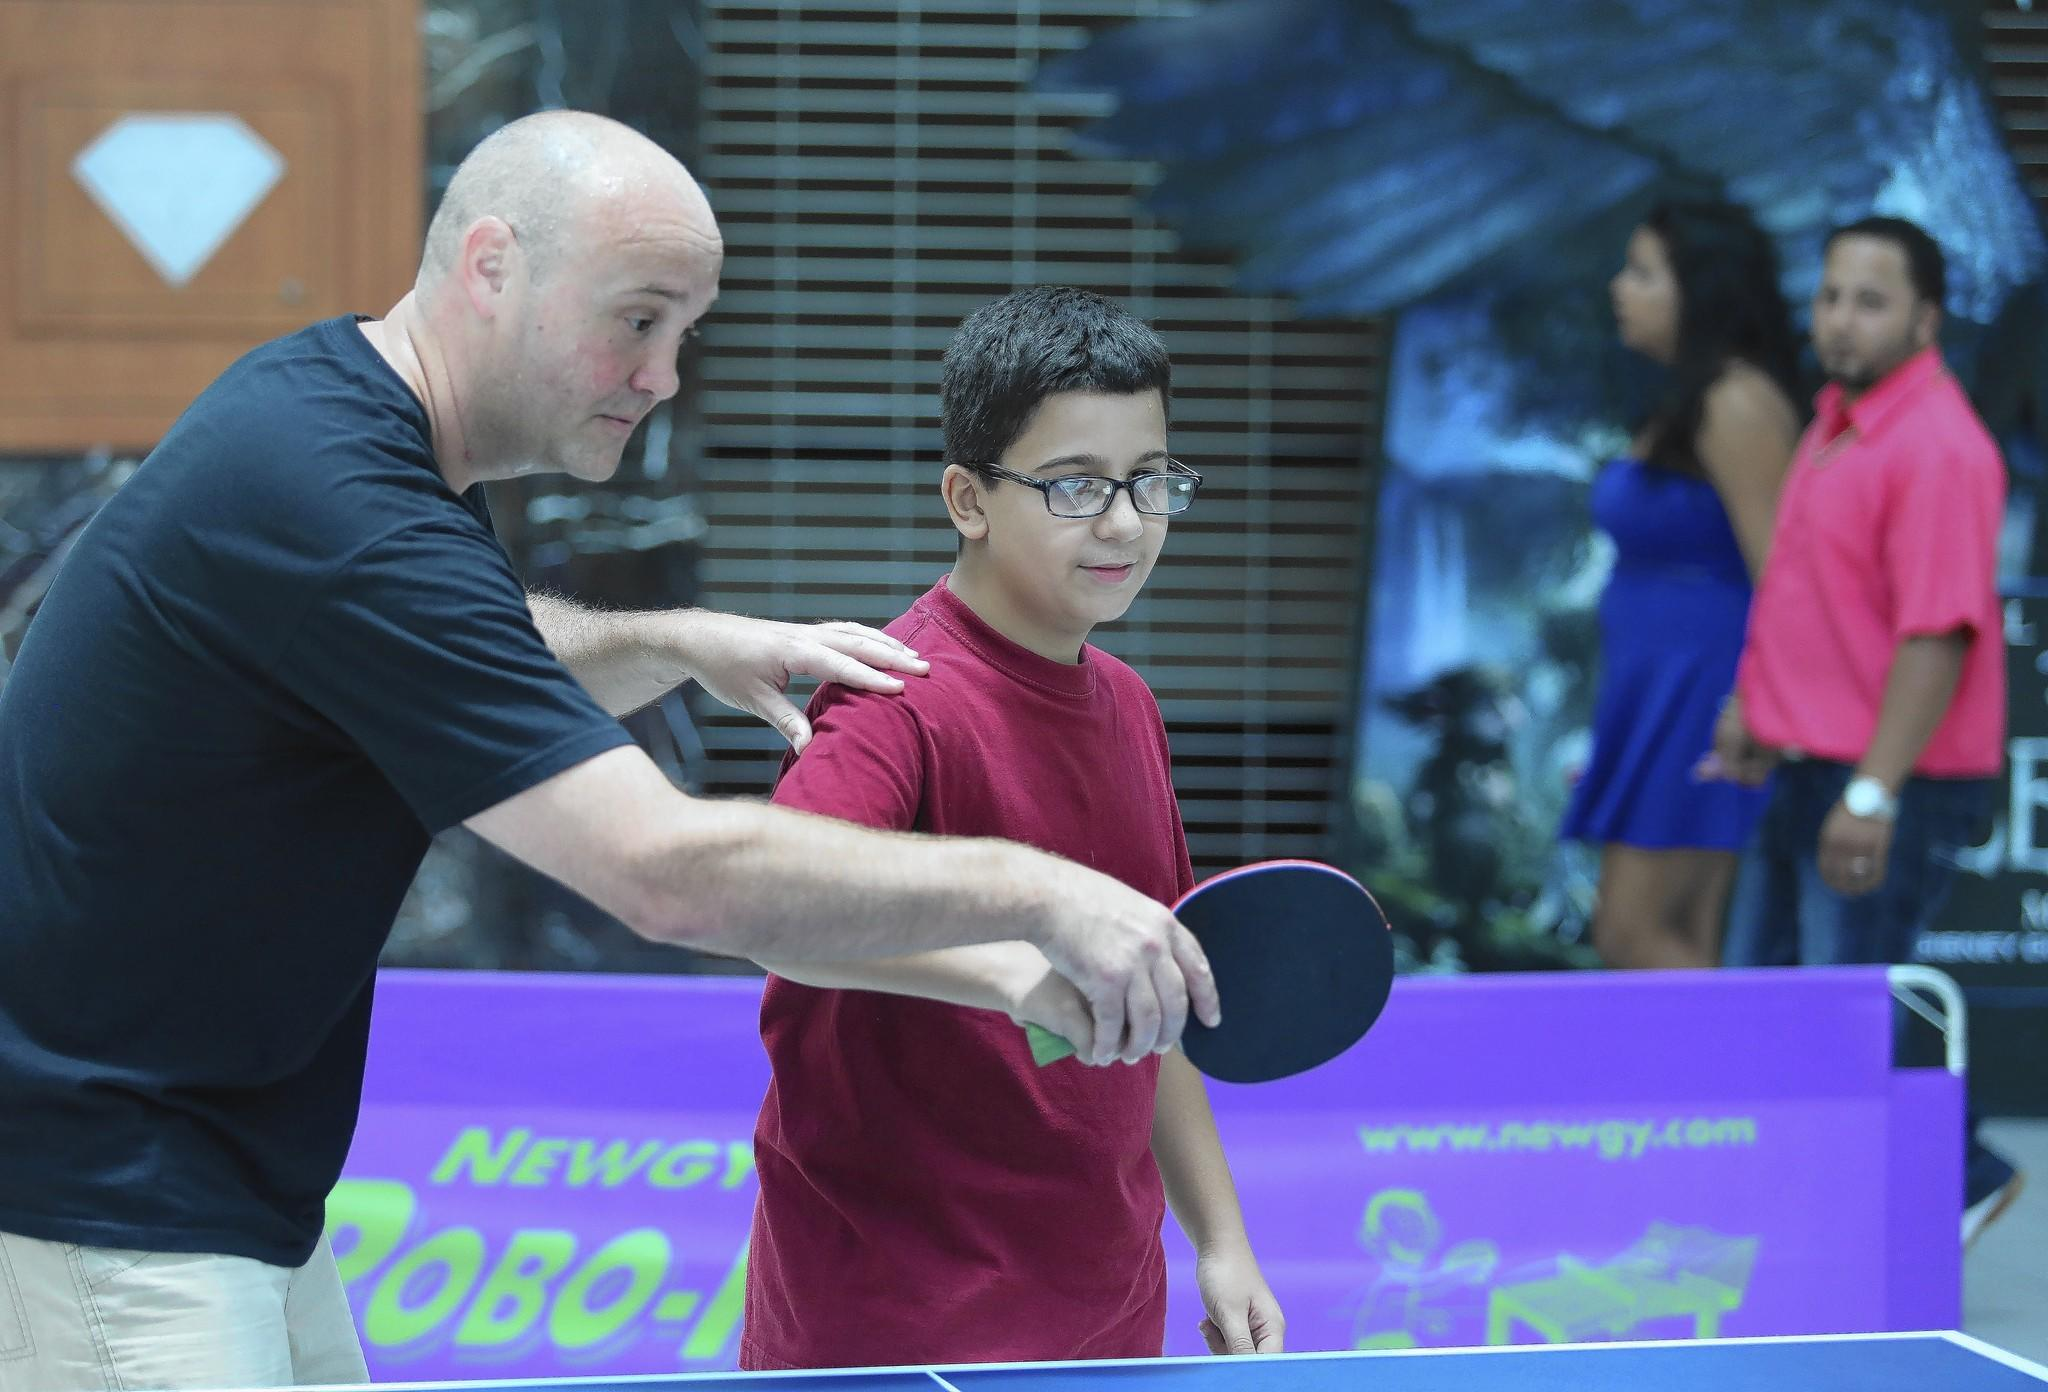 Alex Martinez-Torres, visiting from Puerto Rico, tries table tennis for the first time, with coaching from Michael McFarland.